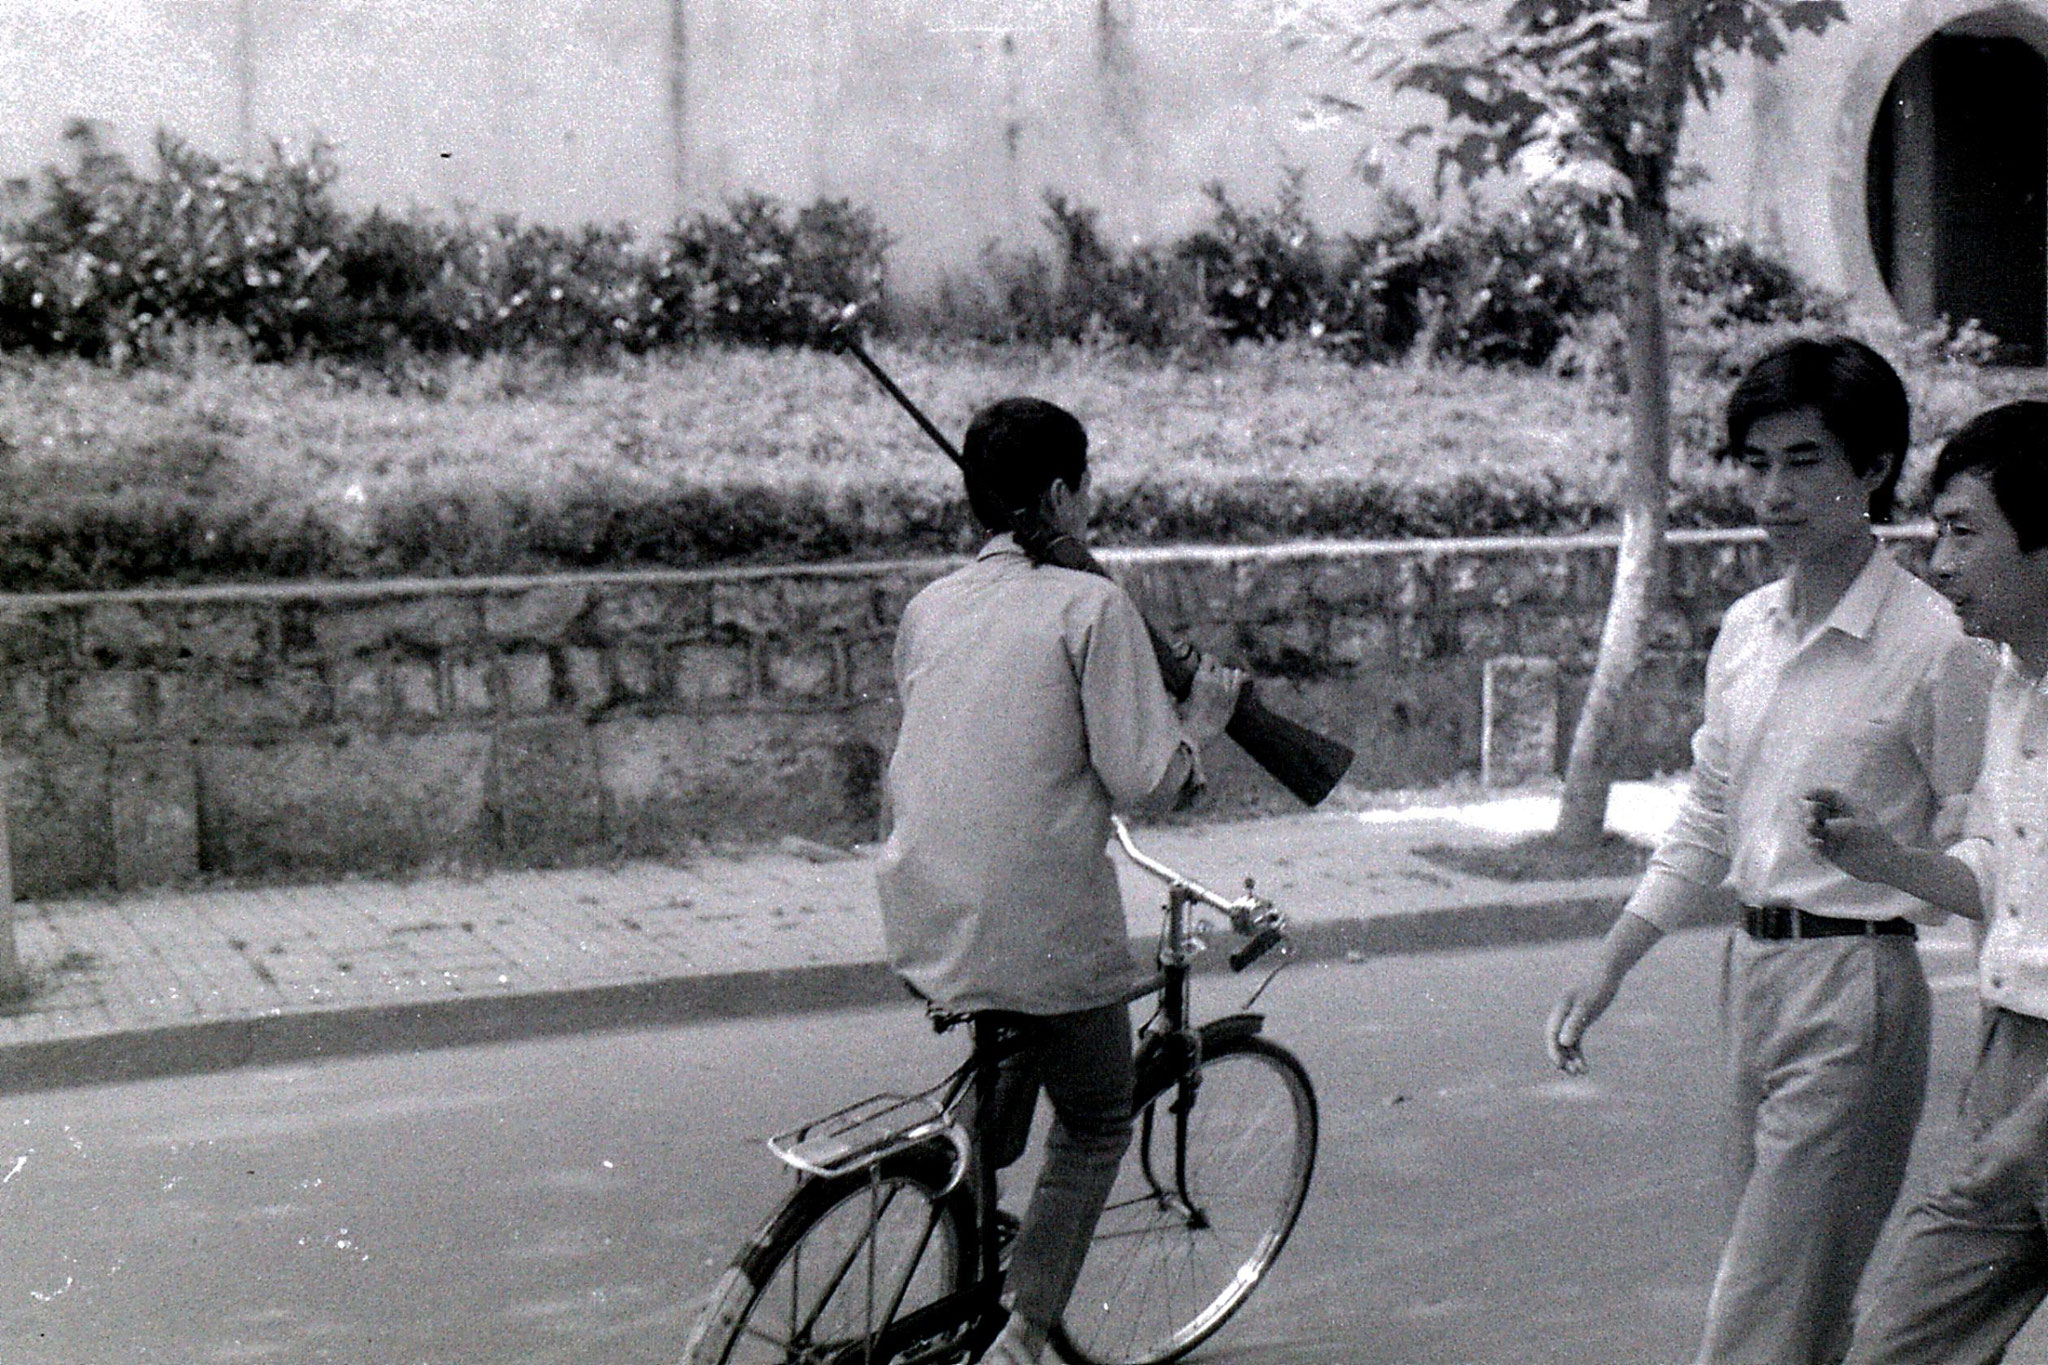 27/6/1989: 22: Shaoxing, man with rifle